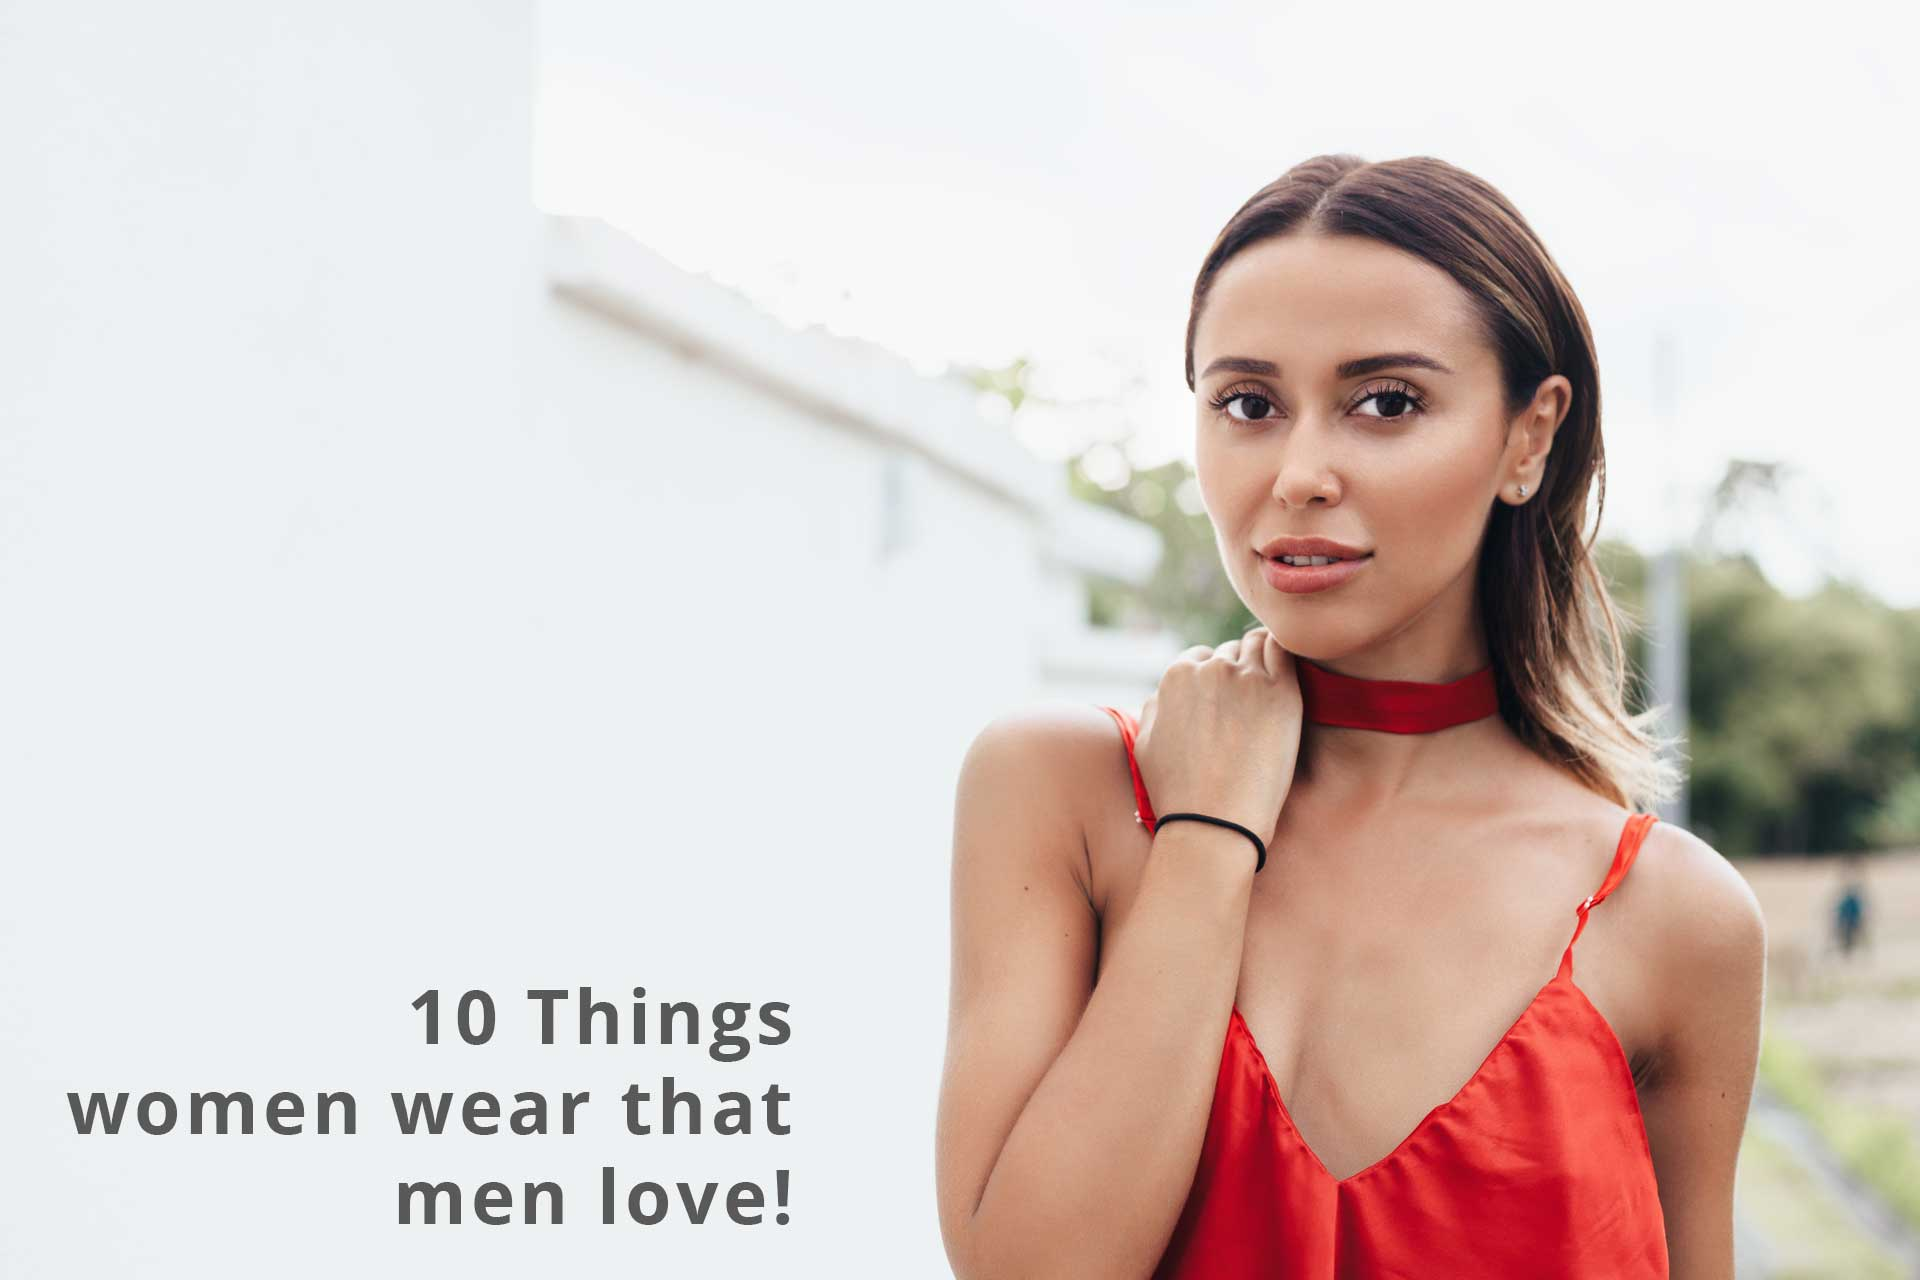 10 Things that women wear that men love Part 1